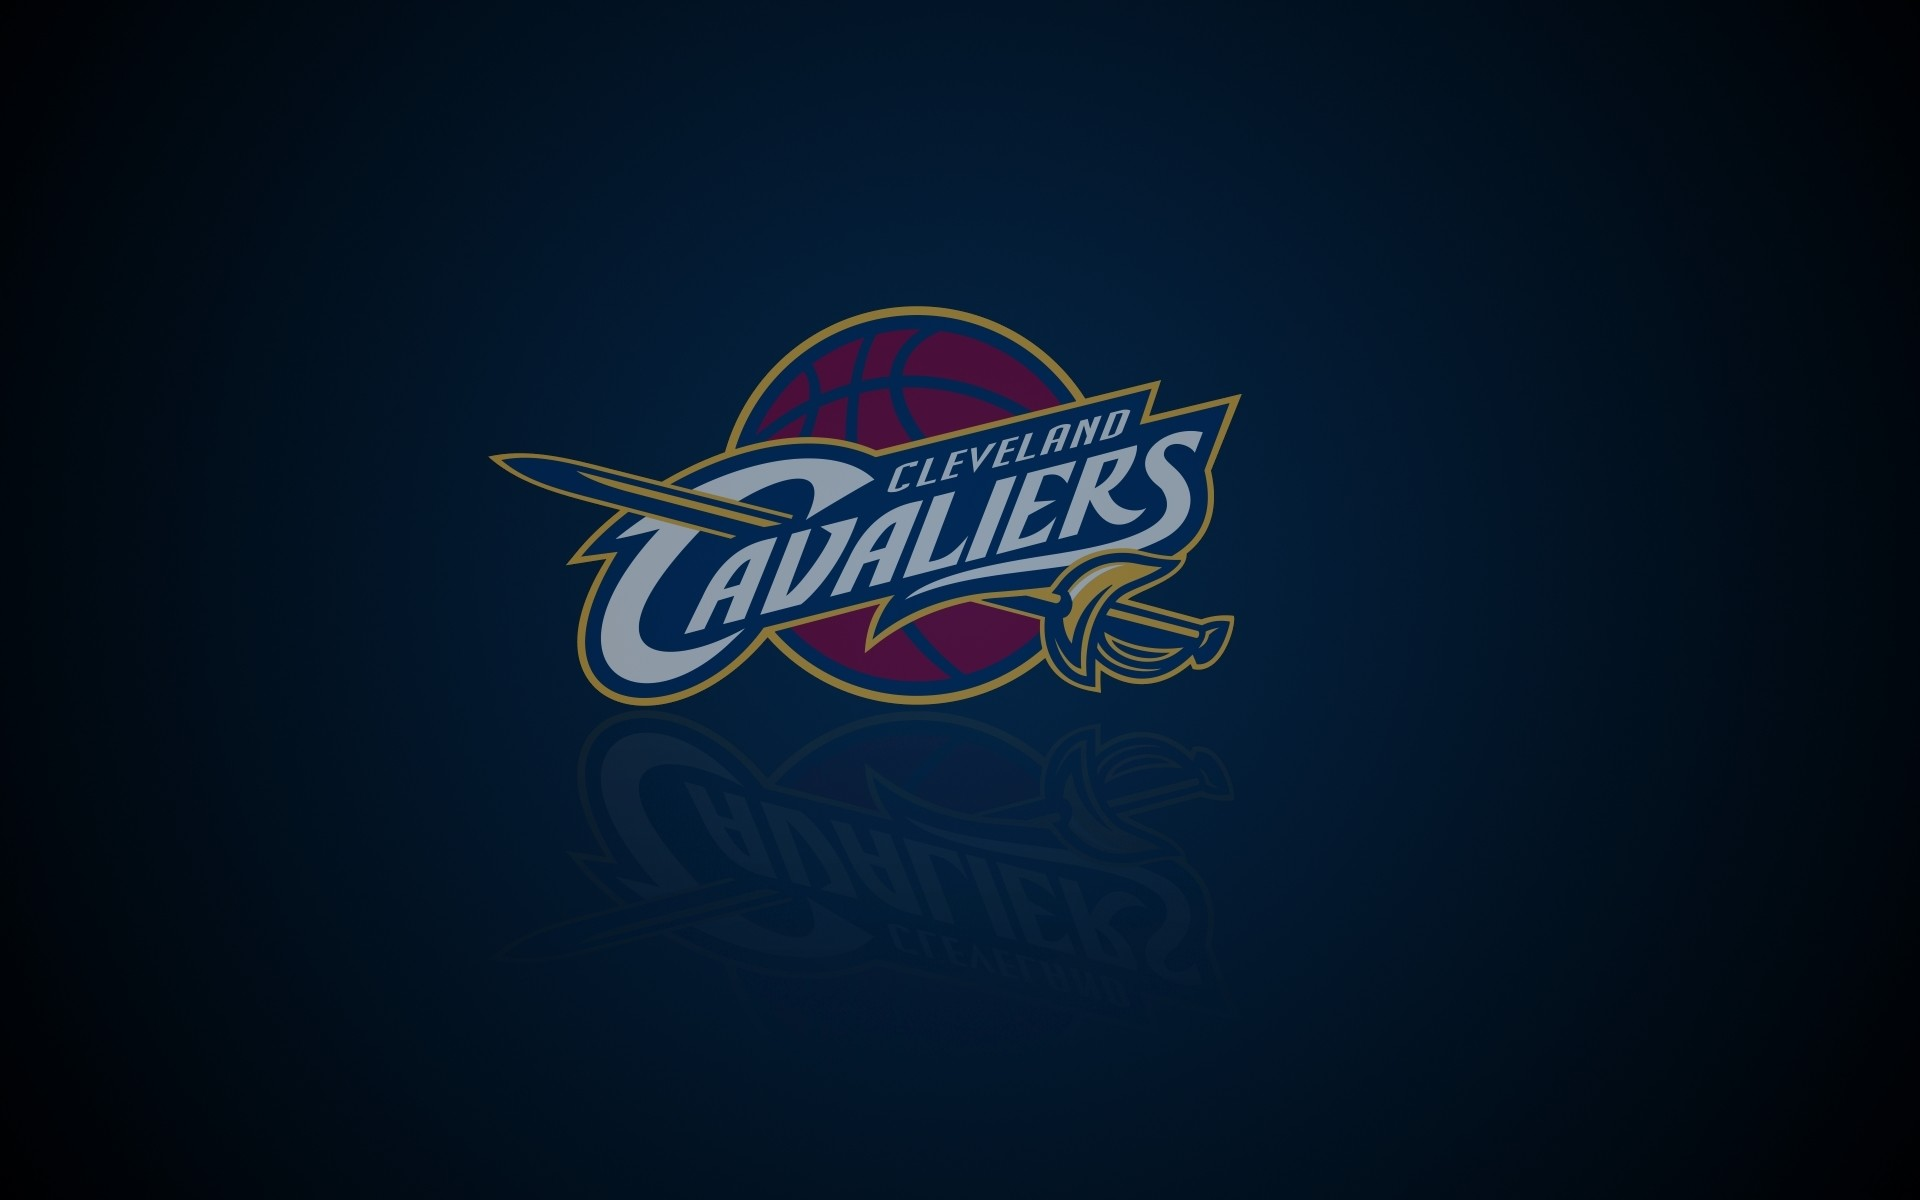 Kyrie irving logo wallpapers 77 images - Cleveland cavaliers wallpaper ...